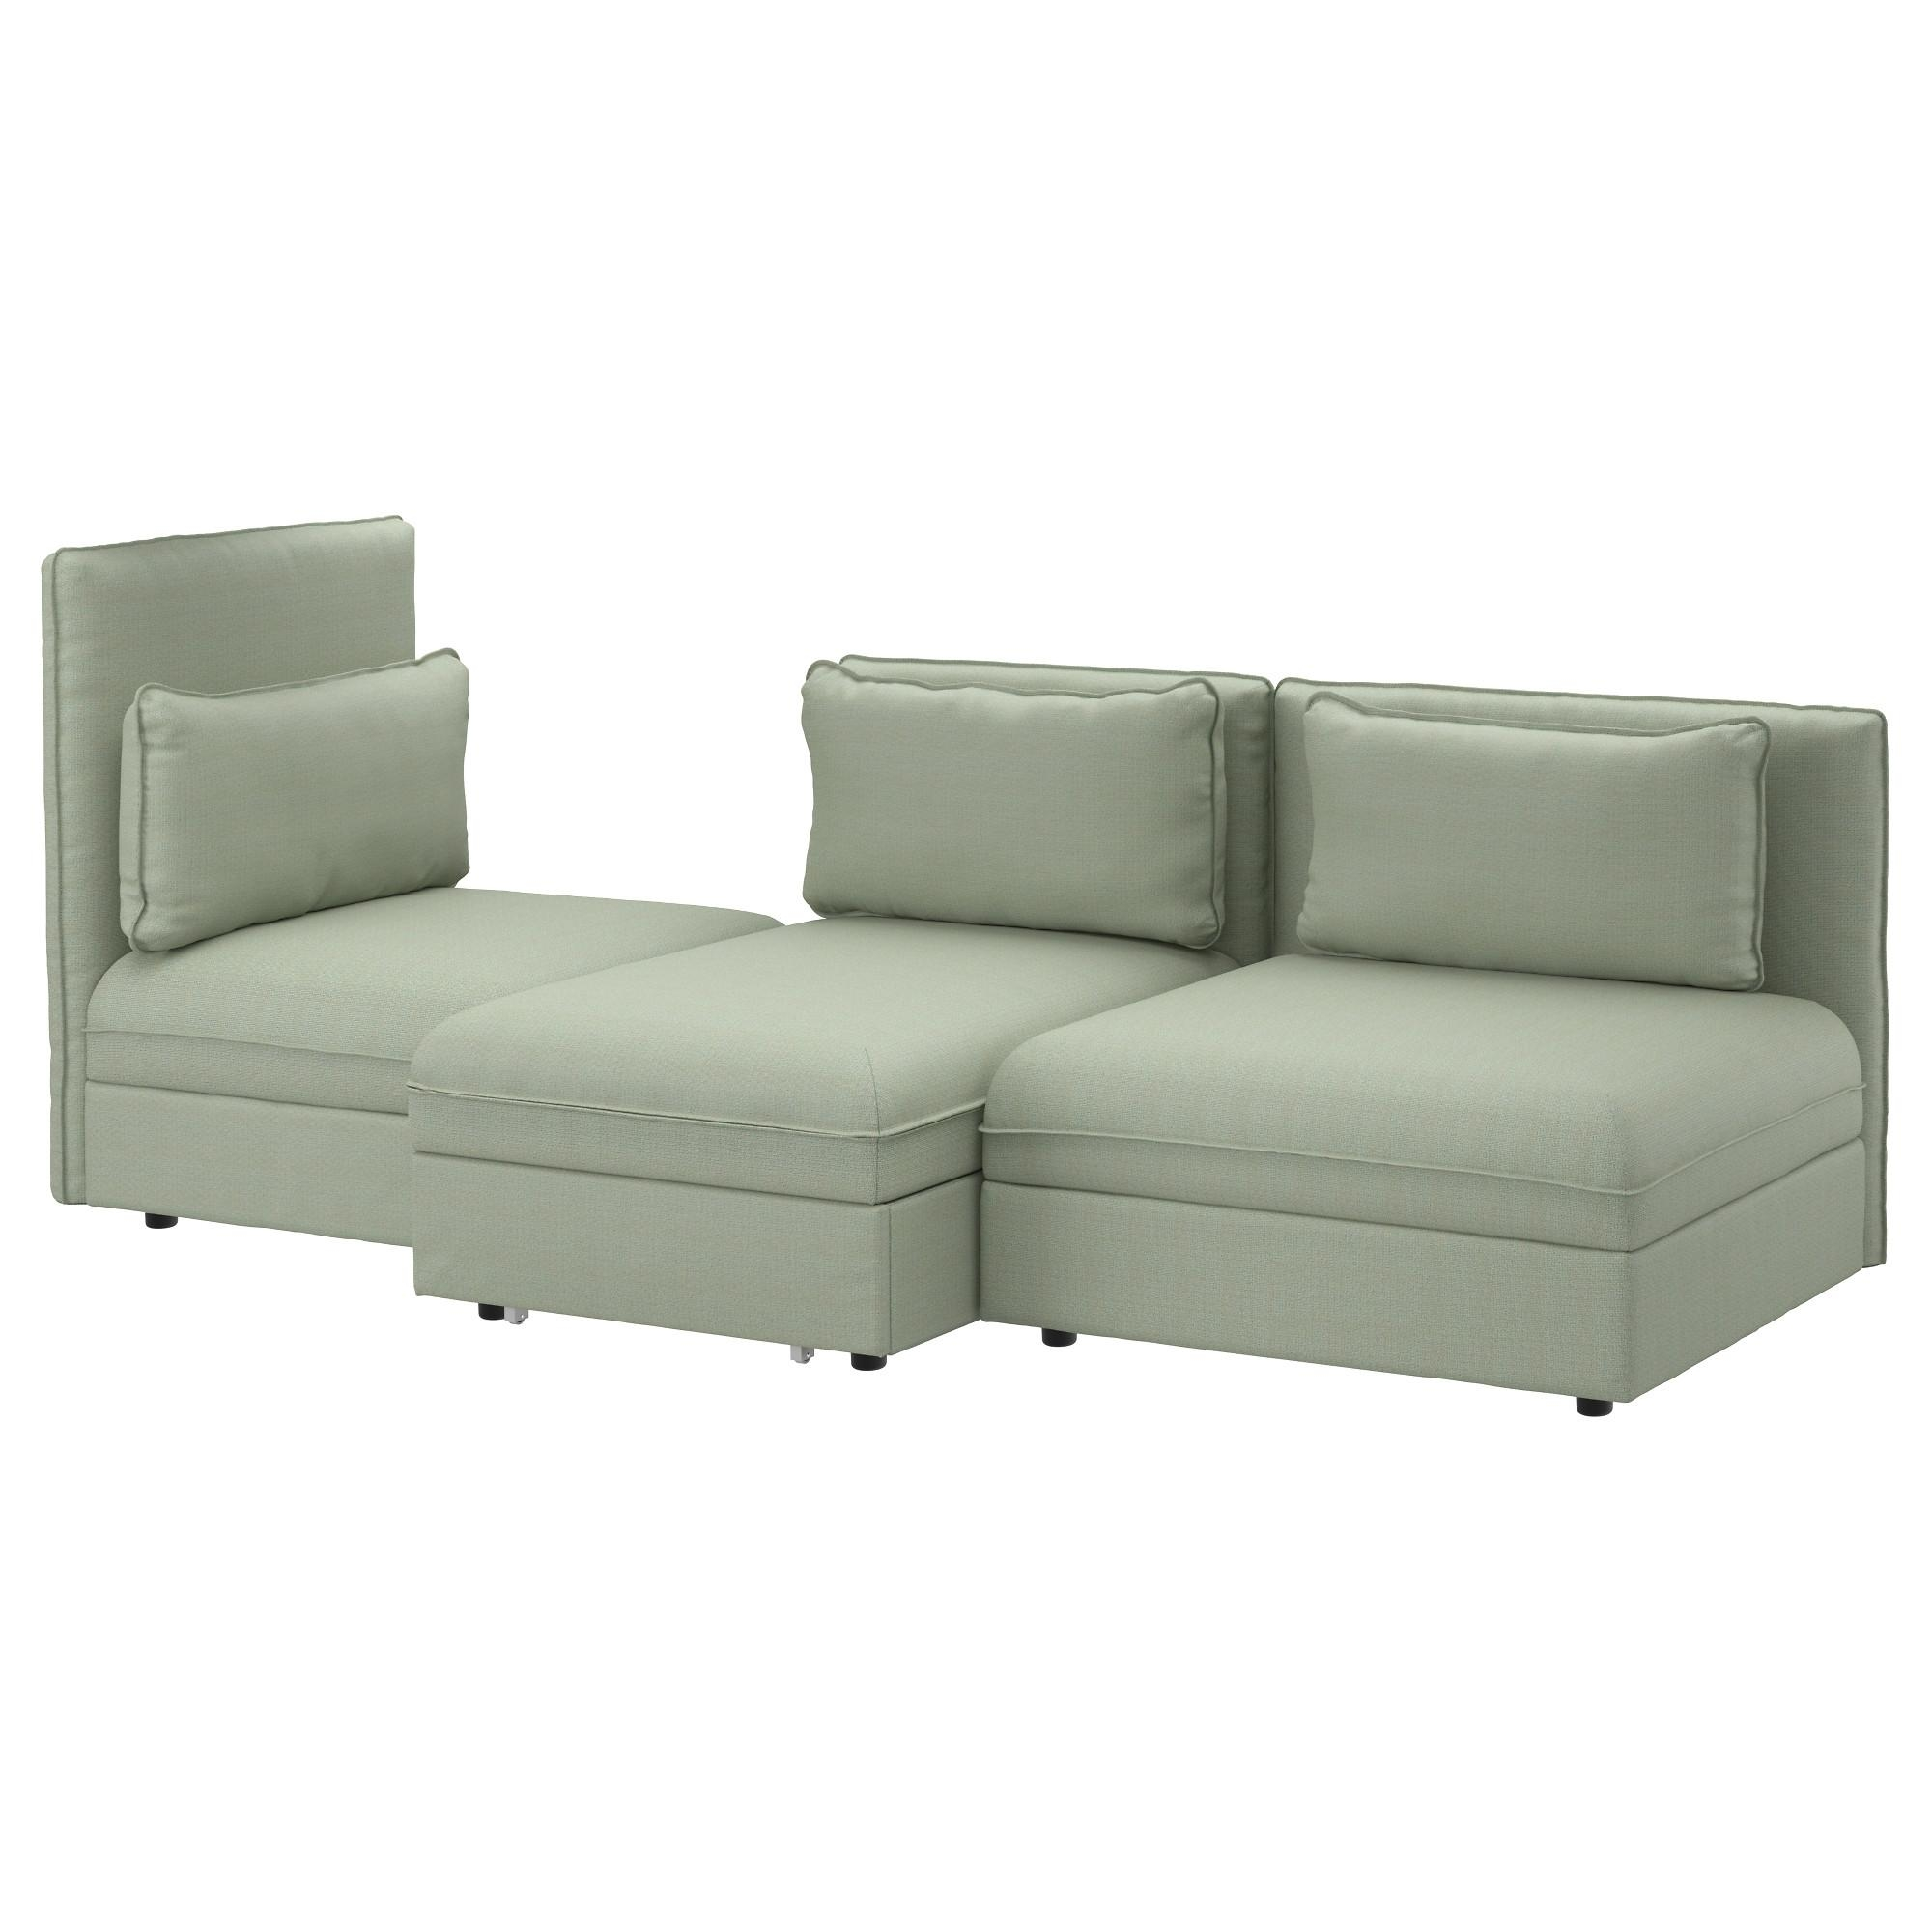 Sofa Beds & Futons – Ikea With Sectional Sofa Bed With Storage (Image 16 of 20)